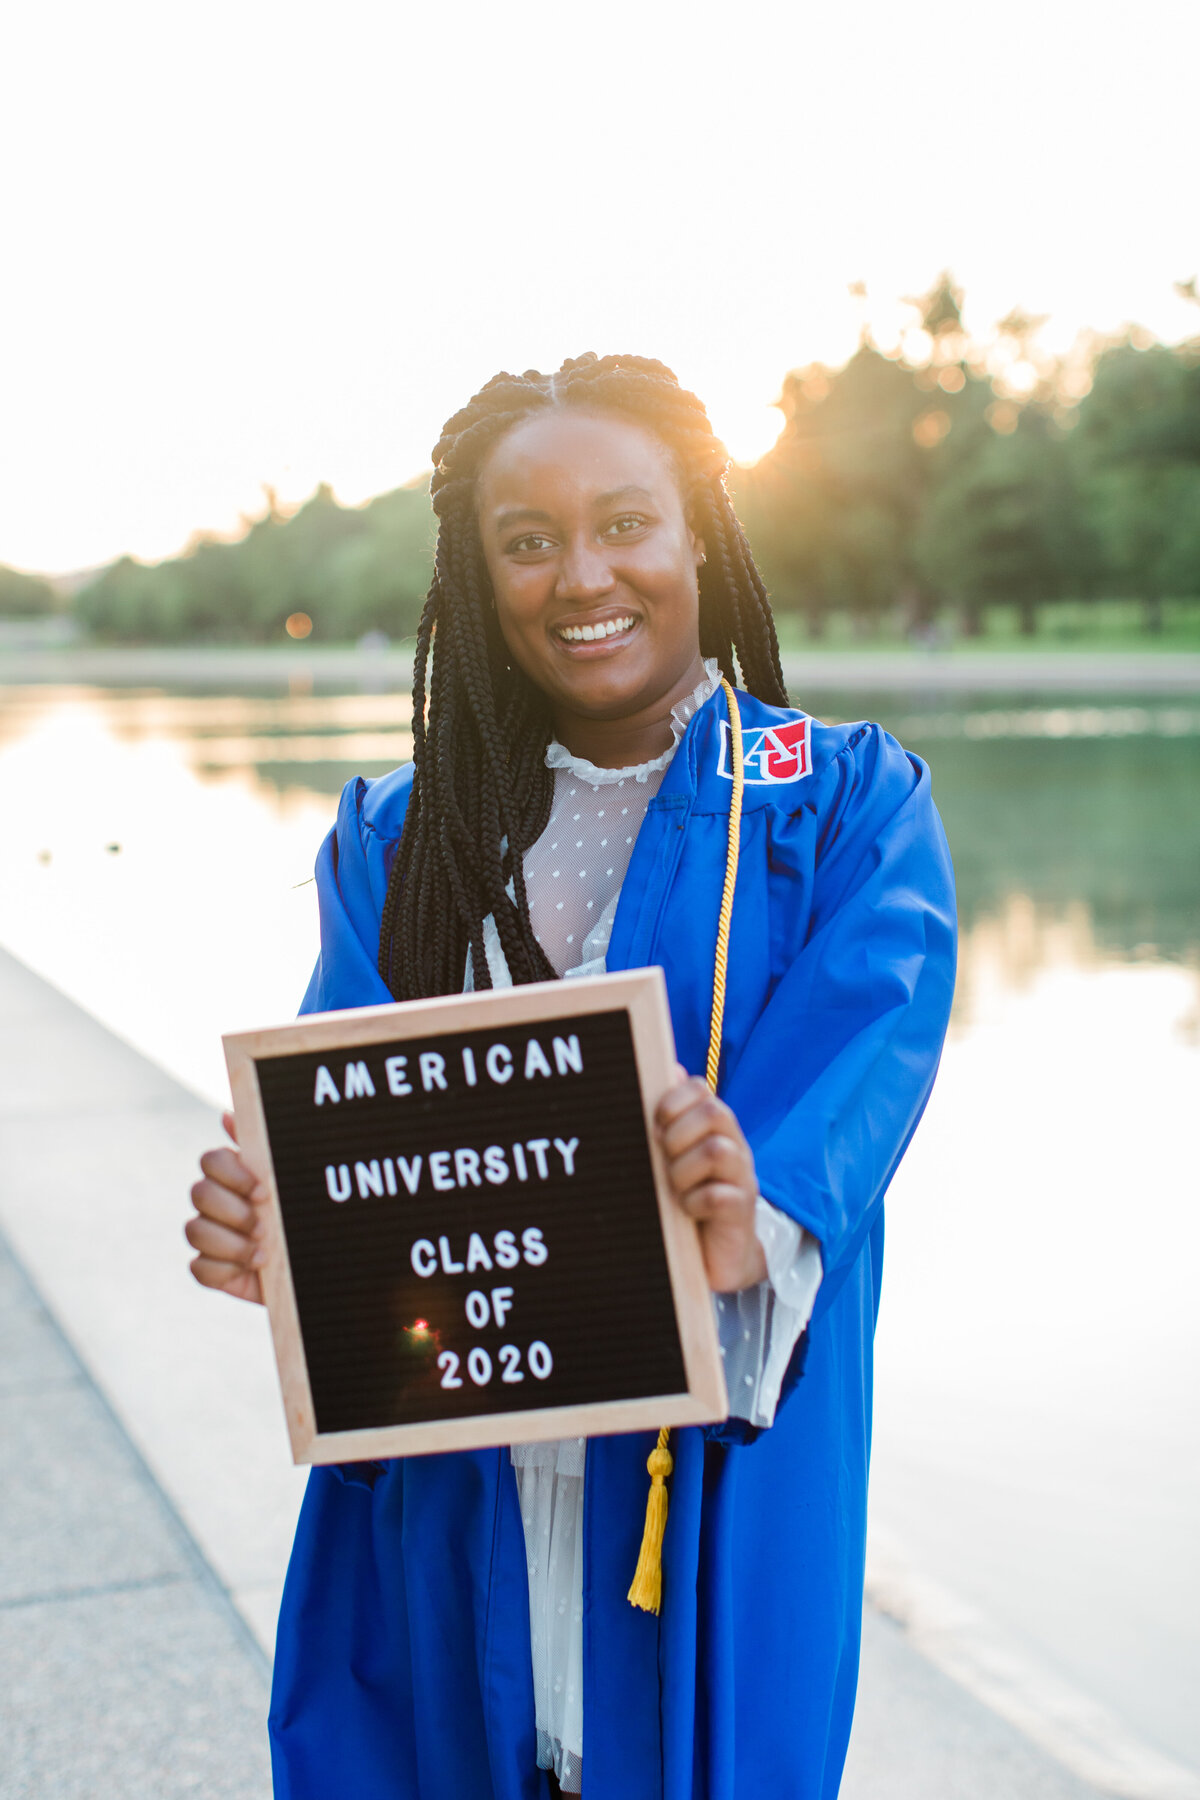 Mia_AmericanUniversity_Washington_DC_Senior_Graduation_Session_2020_Angelika_Johns_Photography-5337